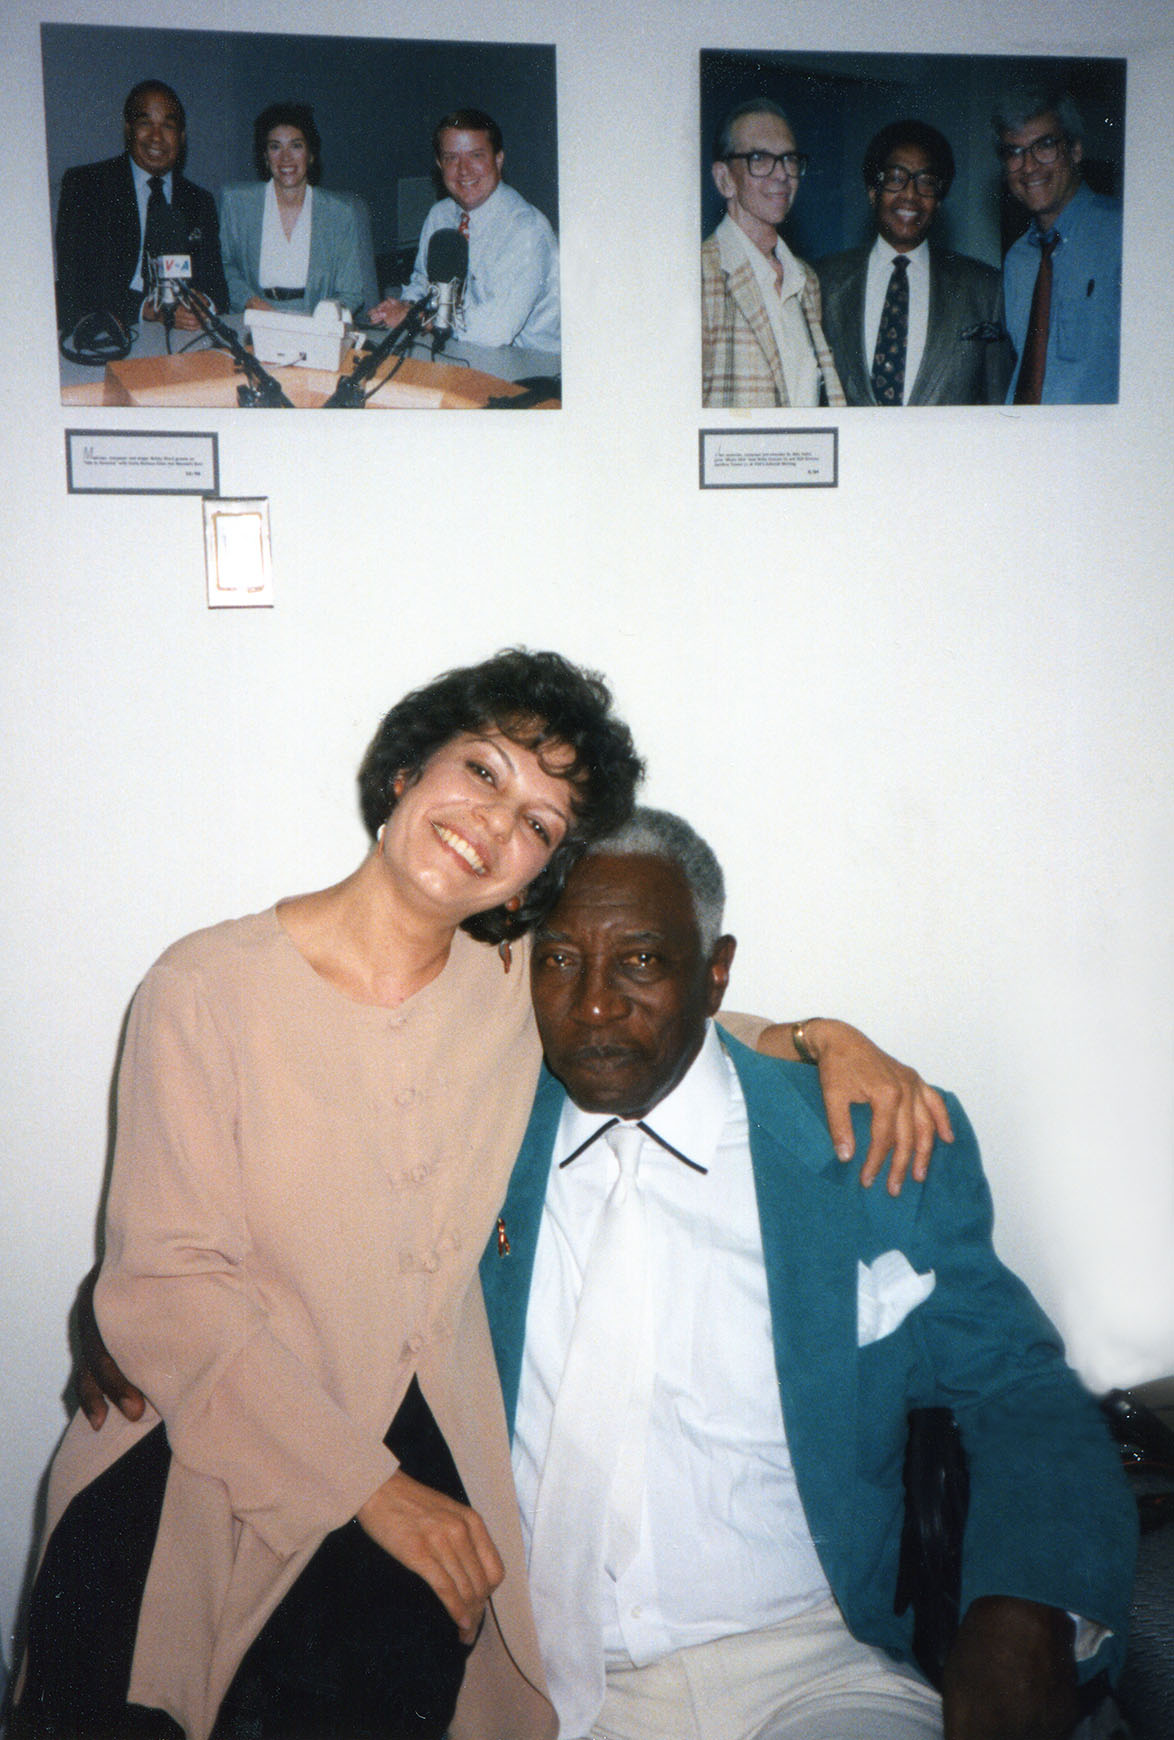 Datevik with the late jazz singer, Joe Williams.